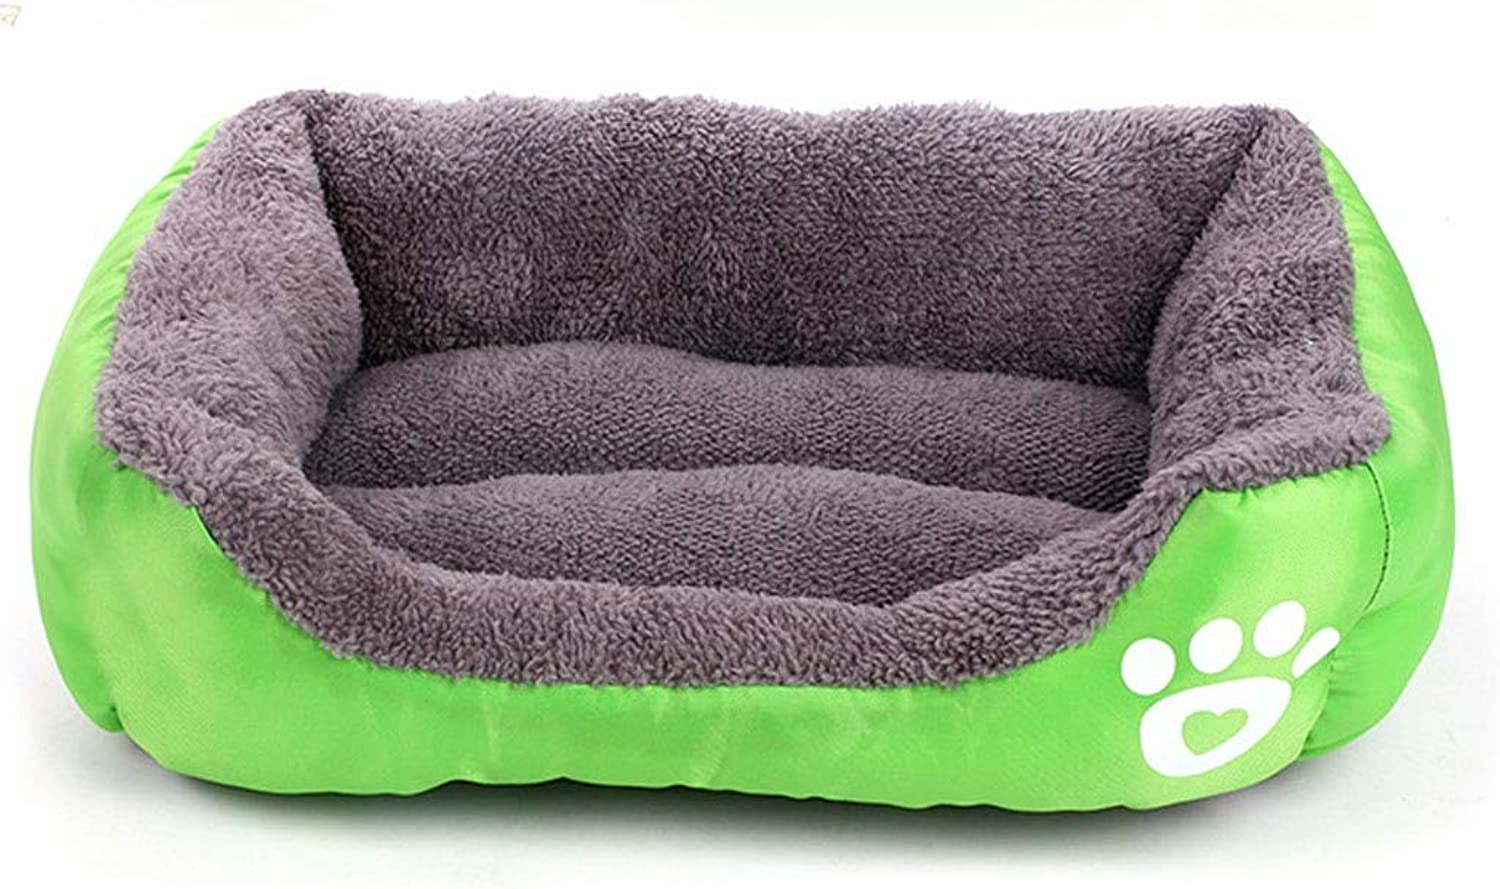 A++ Square Footprint Pet Nest, Home Teddy Medium Small Cat Dog Bed, Four Seasons Universal Oxford Cloth NonSlip Pet Mat (color   Green, Size   40  25  12cm)